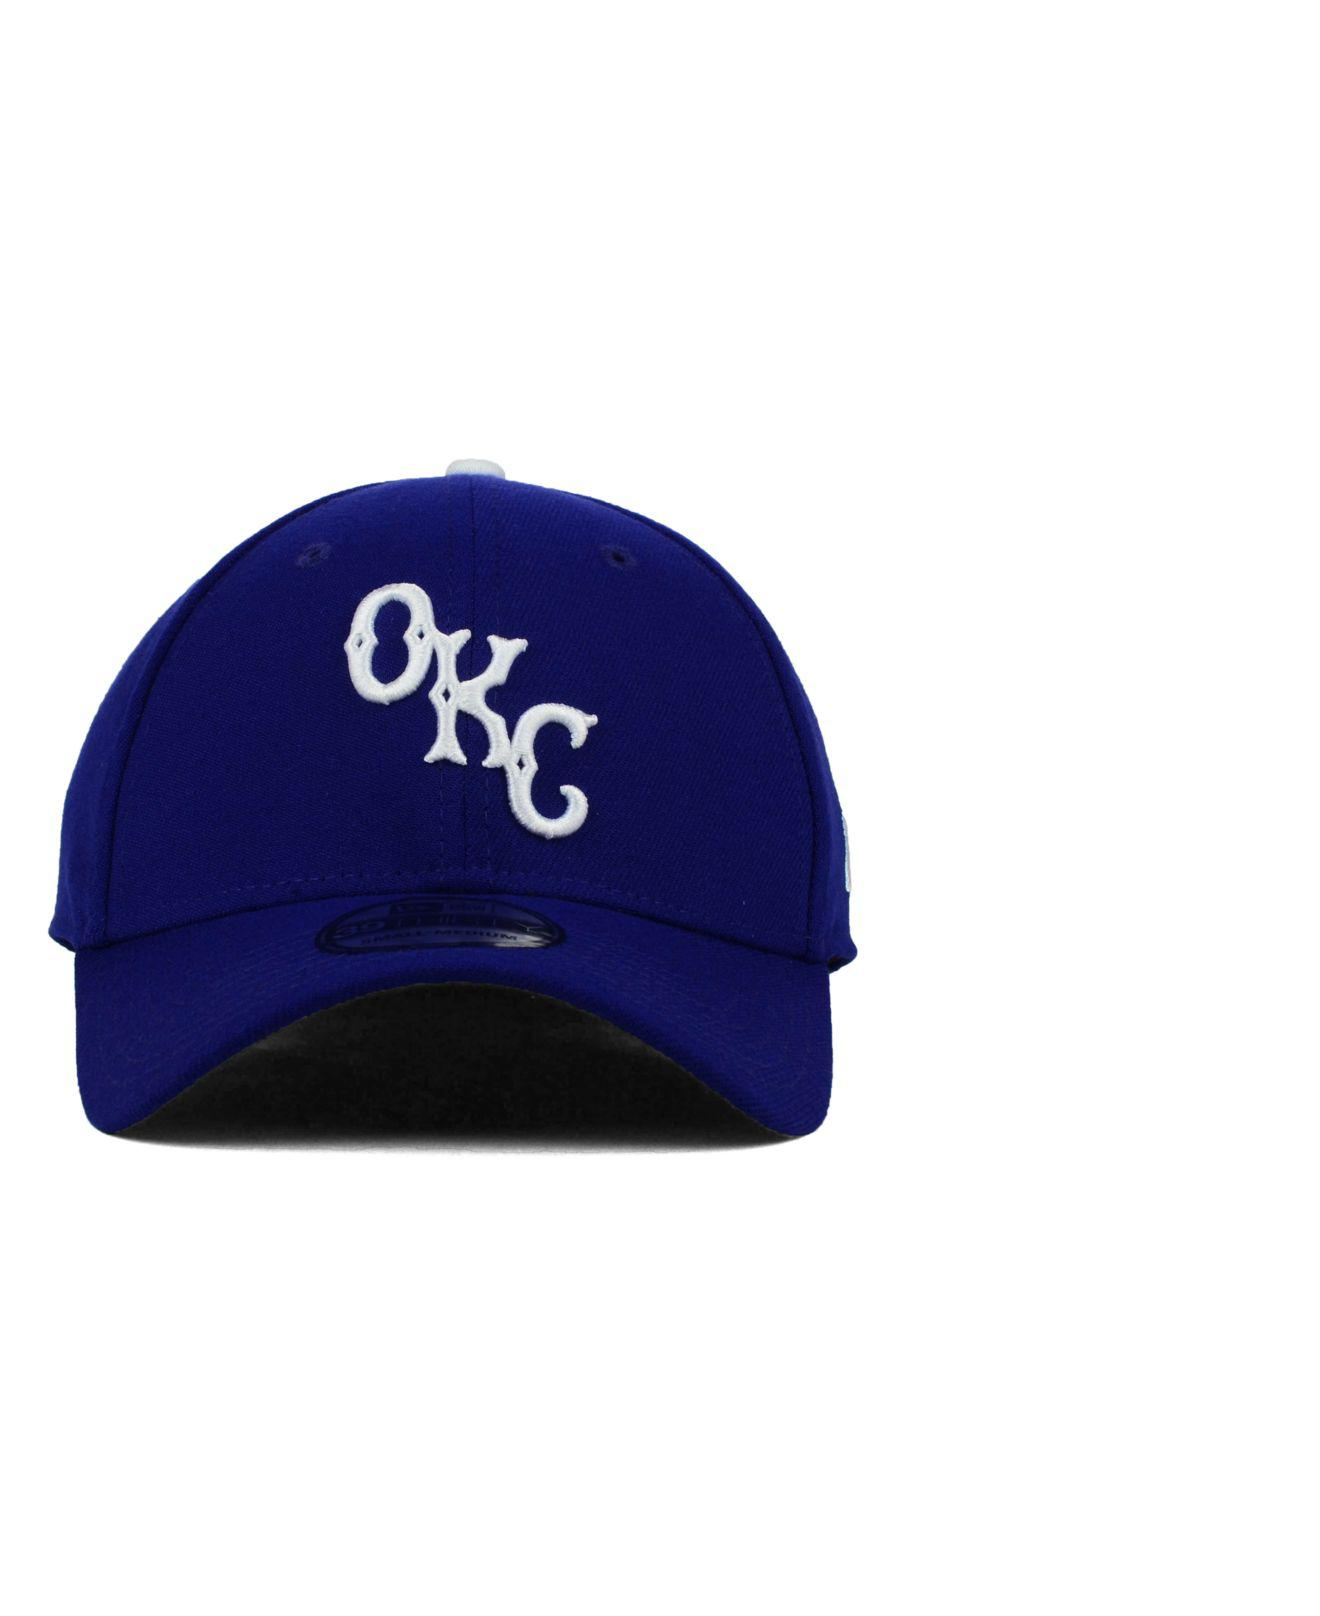 47e061a6607 Lyst - Ktz Oklahoma City Dodgers 39thirty Cap in Blue for Men